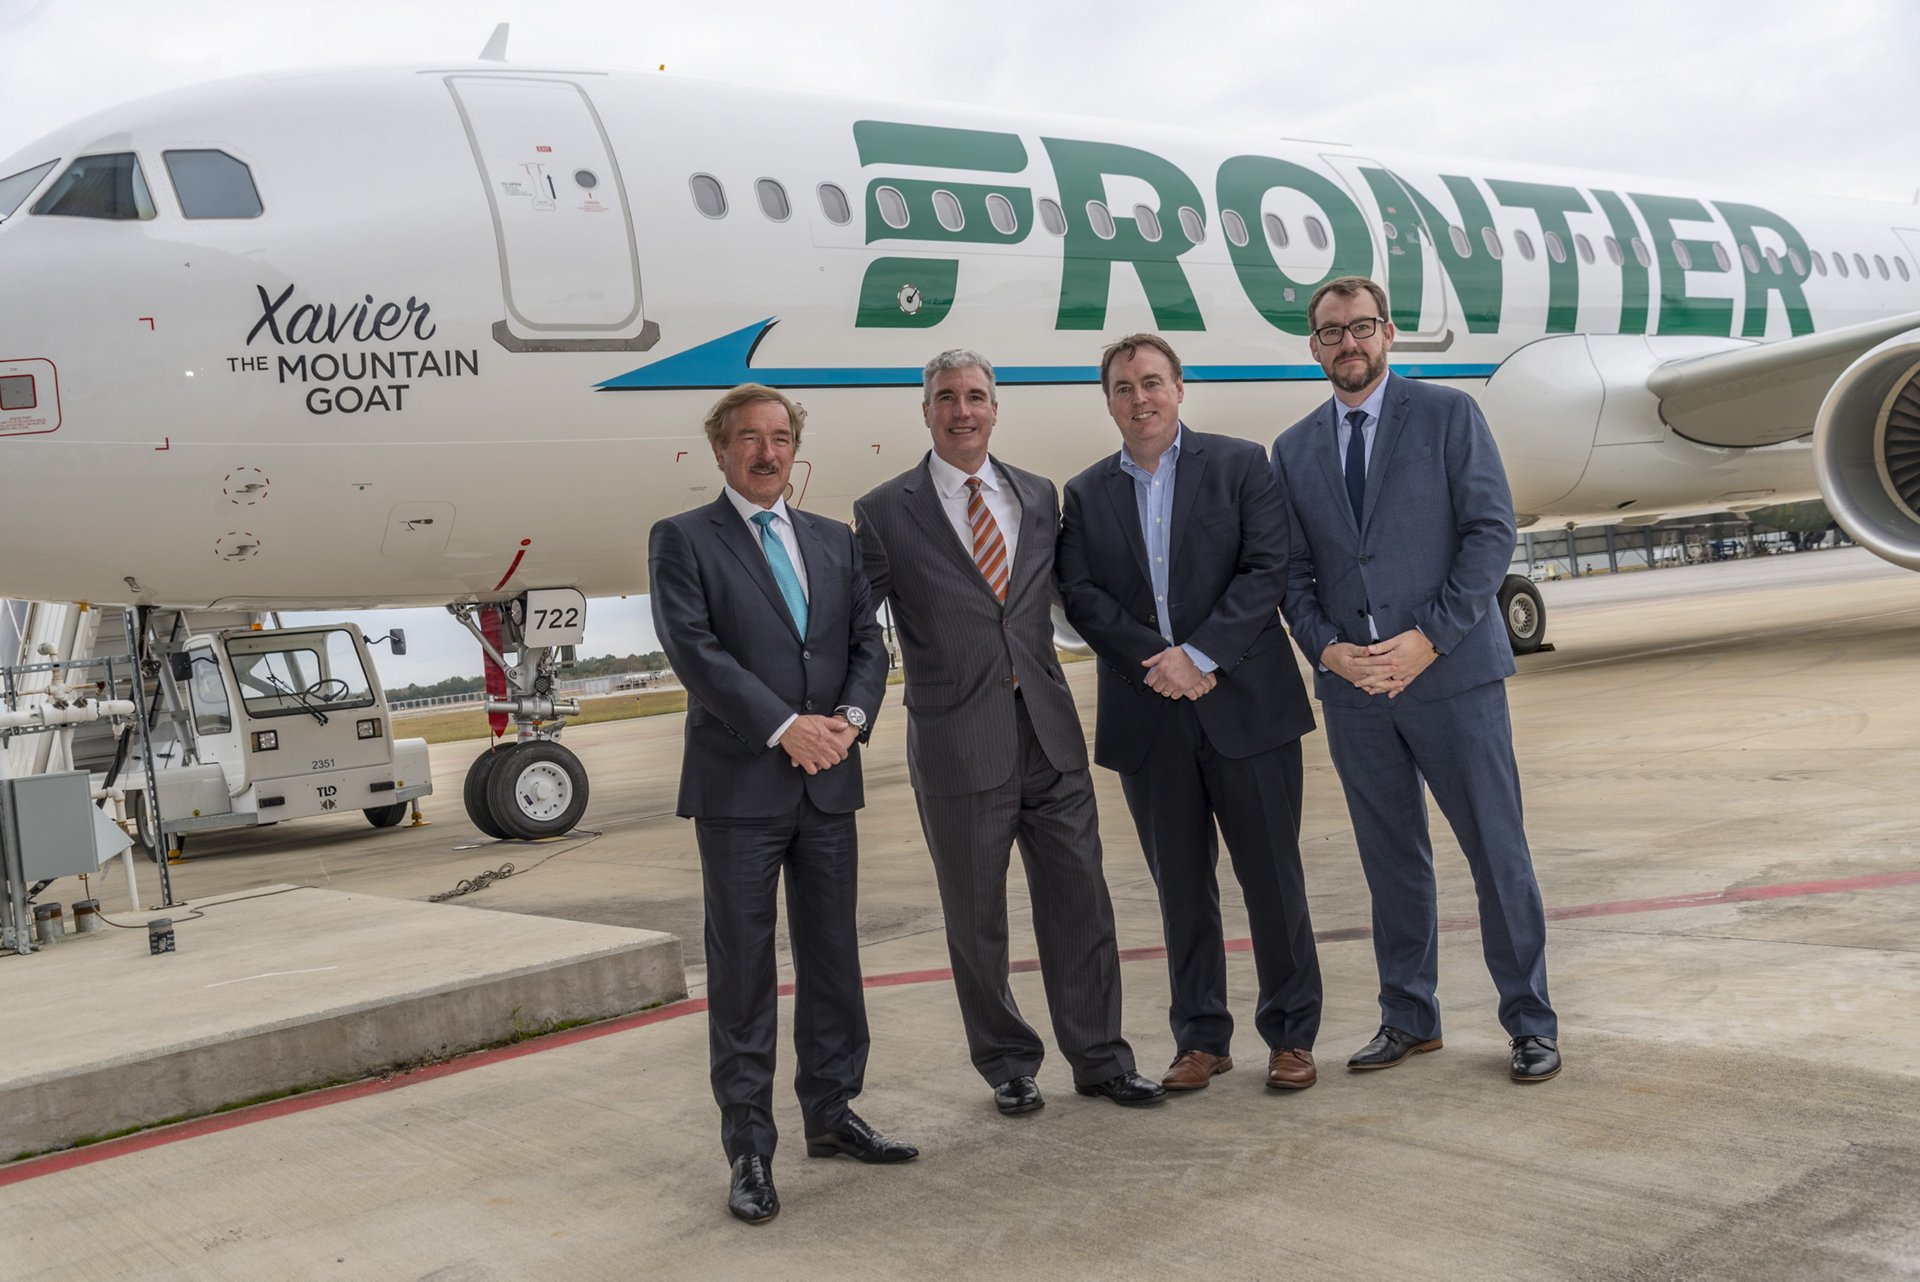 The milestone delivery of the first U.S.-produced A321 to Air Lease Corporation (ALC) was celebrated by (left to right): Steven F. Udvar-Házy, Executive Chairman of ALC; Jeff Knittel, Airbus Americas Chairman & CEO; Jimmy Dempsey, Frontier Airlines CFO; and Daryl Taylor, Vice President & General Manager of the Airbus U.S. Manufacturing Facility